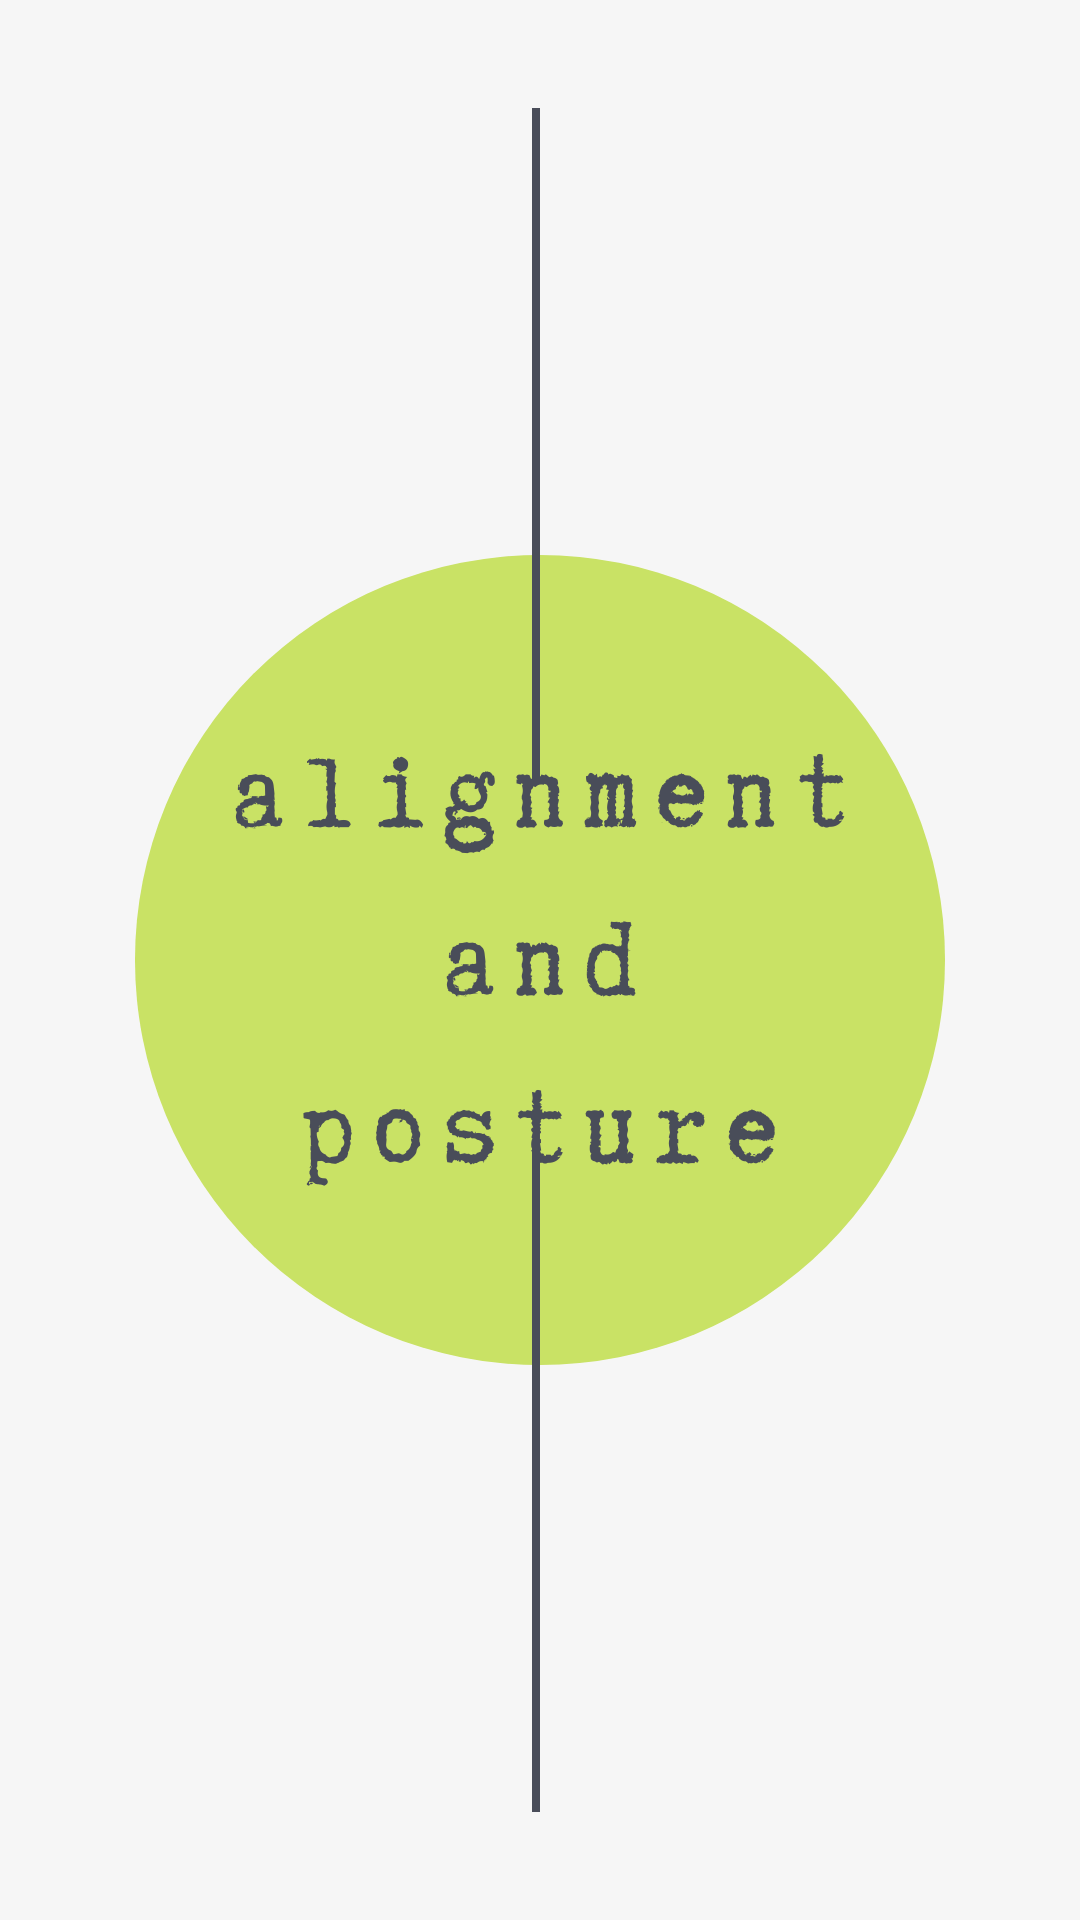 Online Posture and Alignment Course